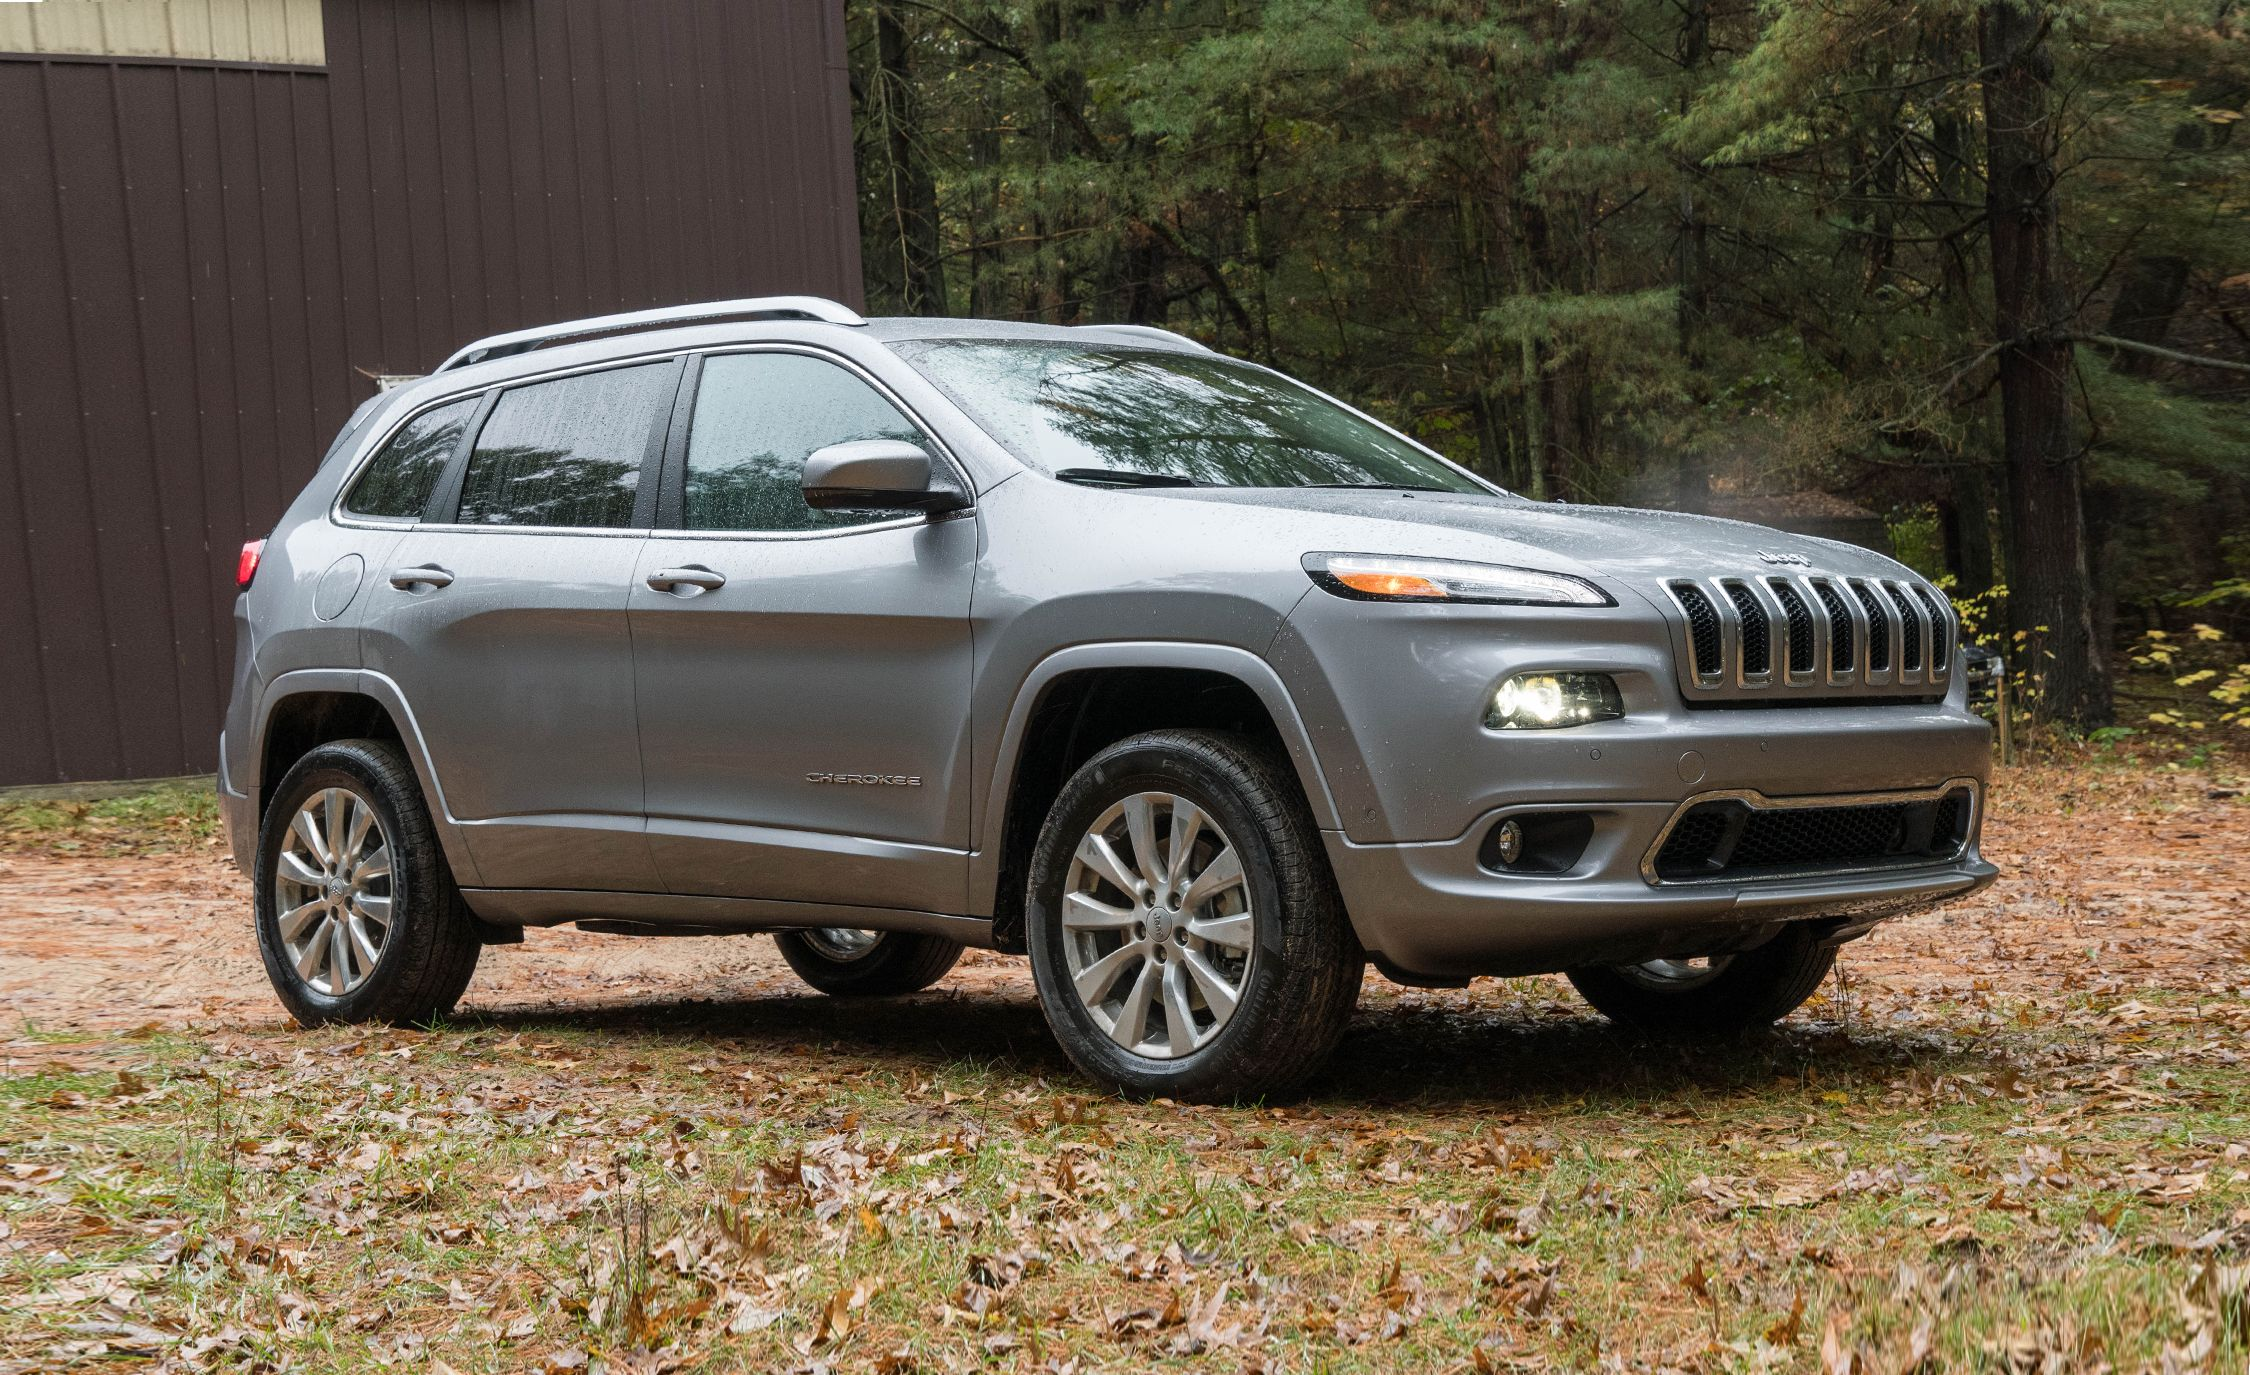 jeep cherokee reviews | jeep cherokee price, photos, and specs